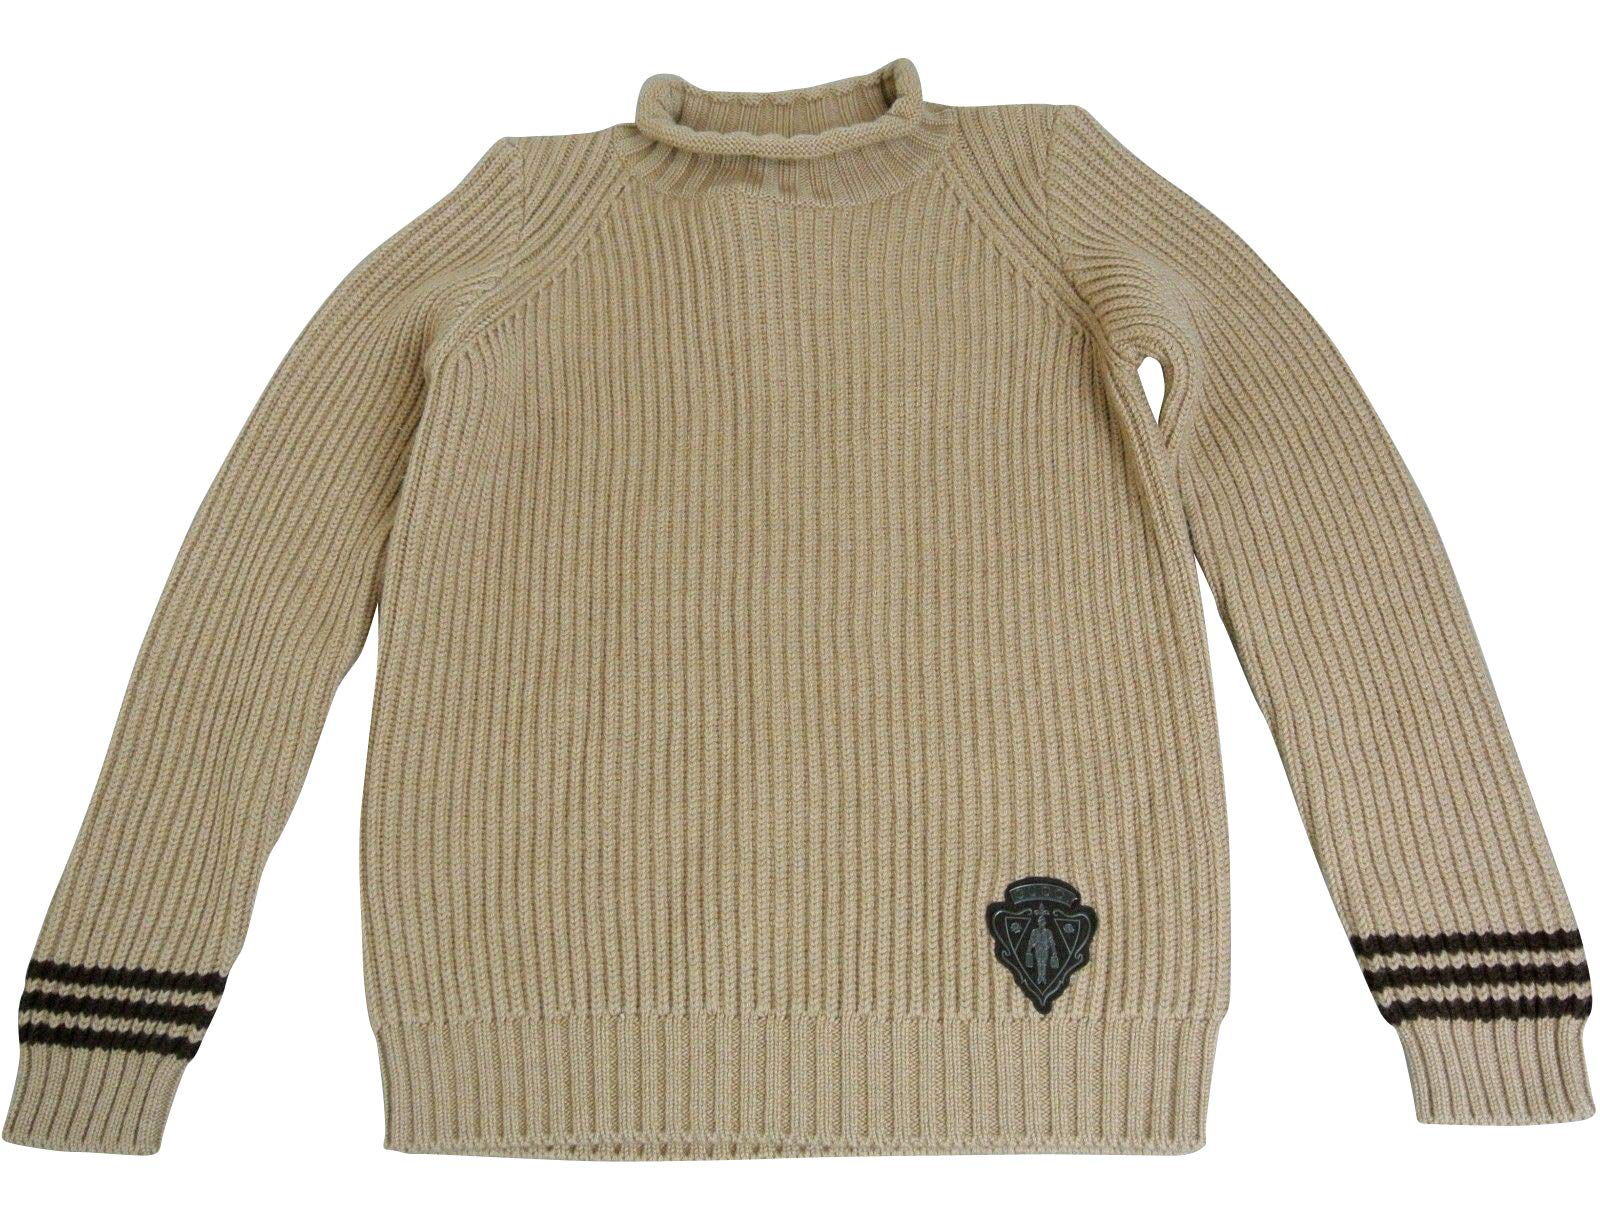 Gucci Unisex Brown Wool Crew Neck Sweater Top Jumper with Hysteria Crest 293118 (Size 10)